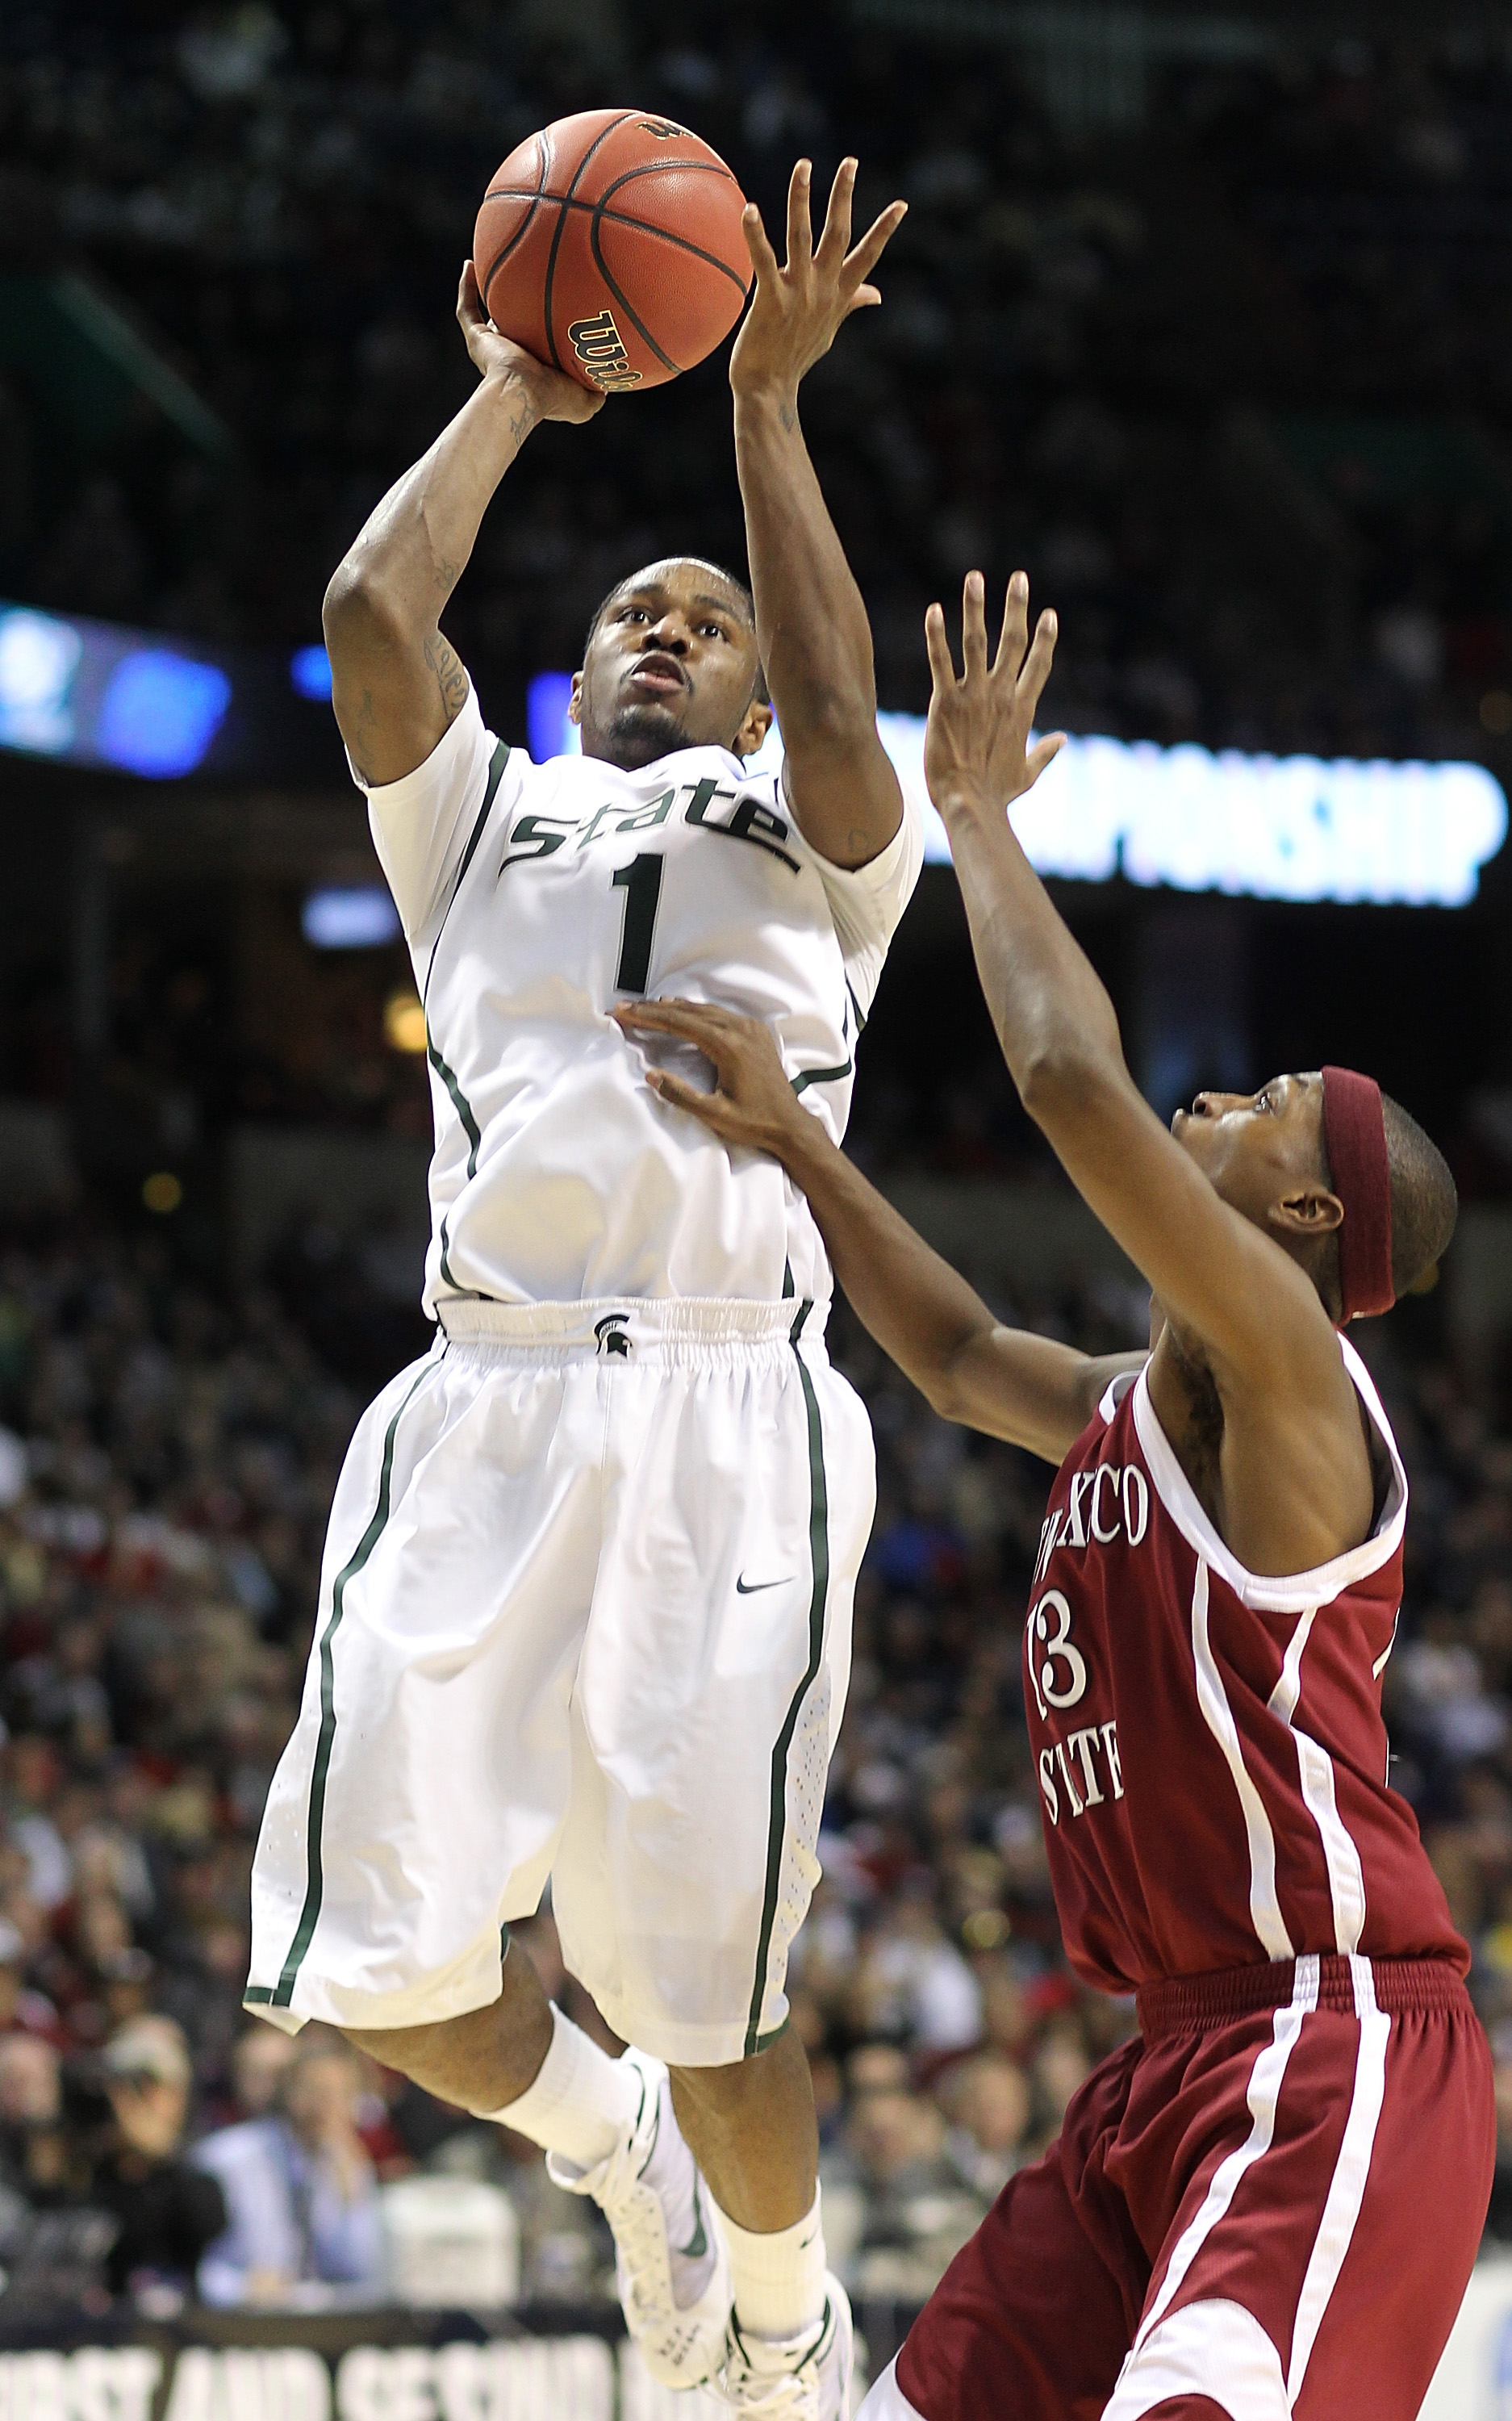 SPOKANE - MARCH 19:  Kalin Lucas #1 of the Michigan State Spartans shoots against Hernst Laroche #13 of the New Mexico State Aggies during the first round of the 2010 NCAA men's basketball tournament at the Spokane Arena on March 19, 2010 in Spokane, Wash